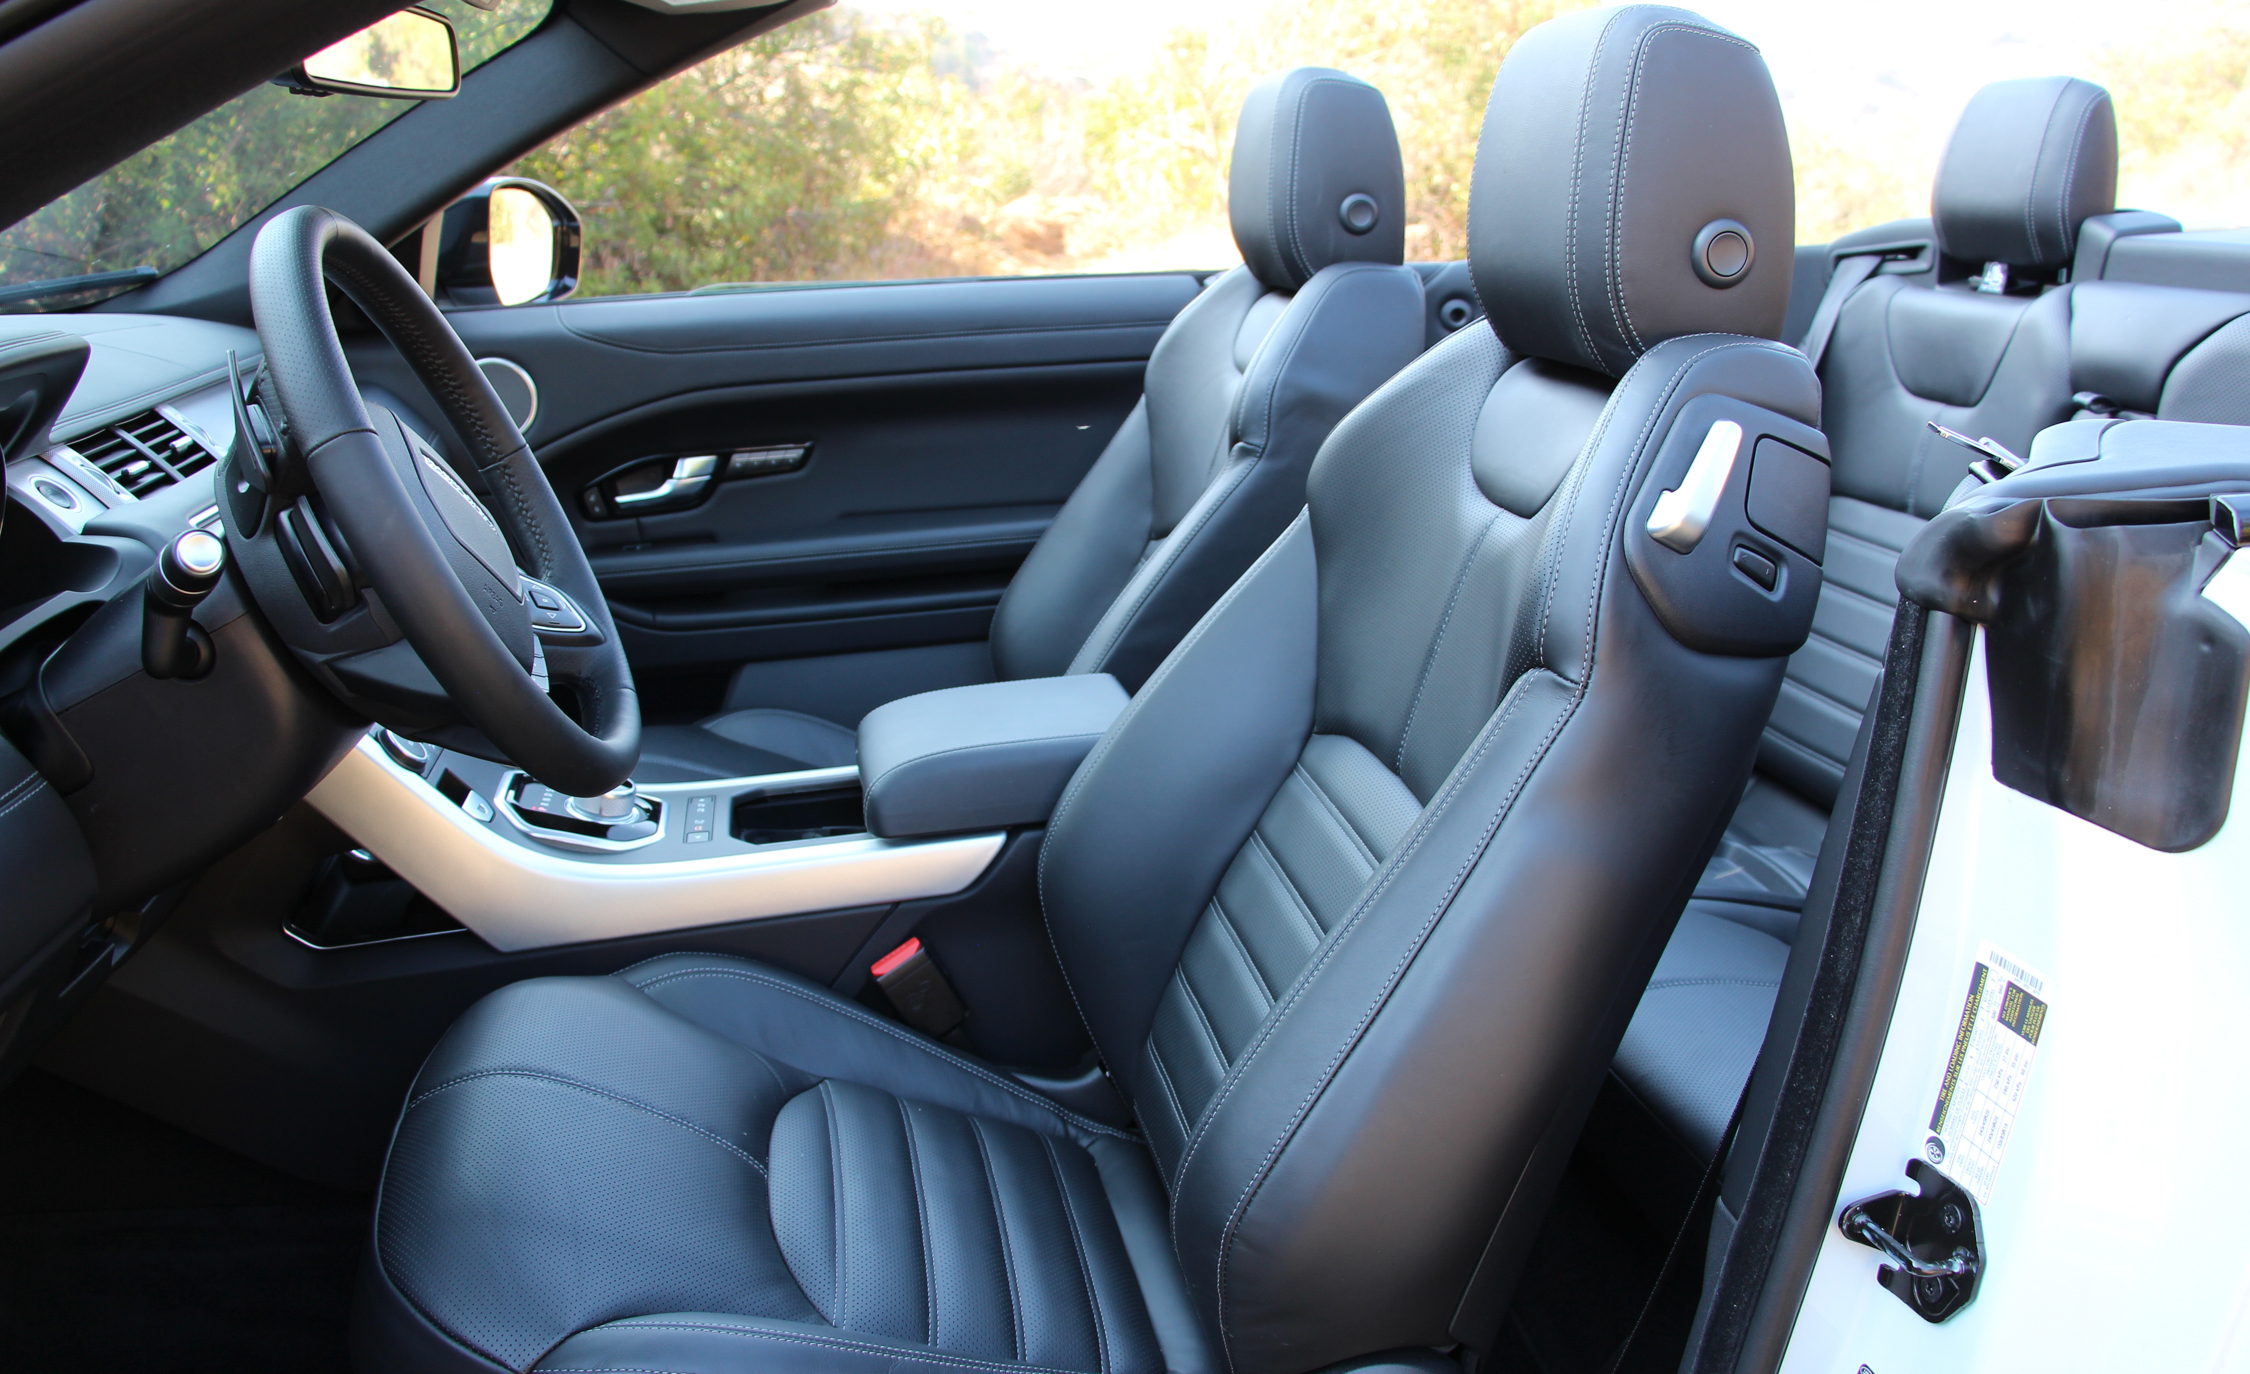 2017 Land Rover Range Rover Evoque Convertible Interior Seats Front (Photo 13 of 14)